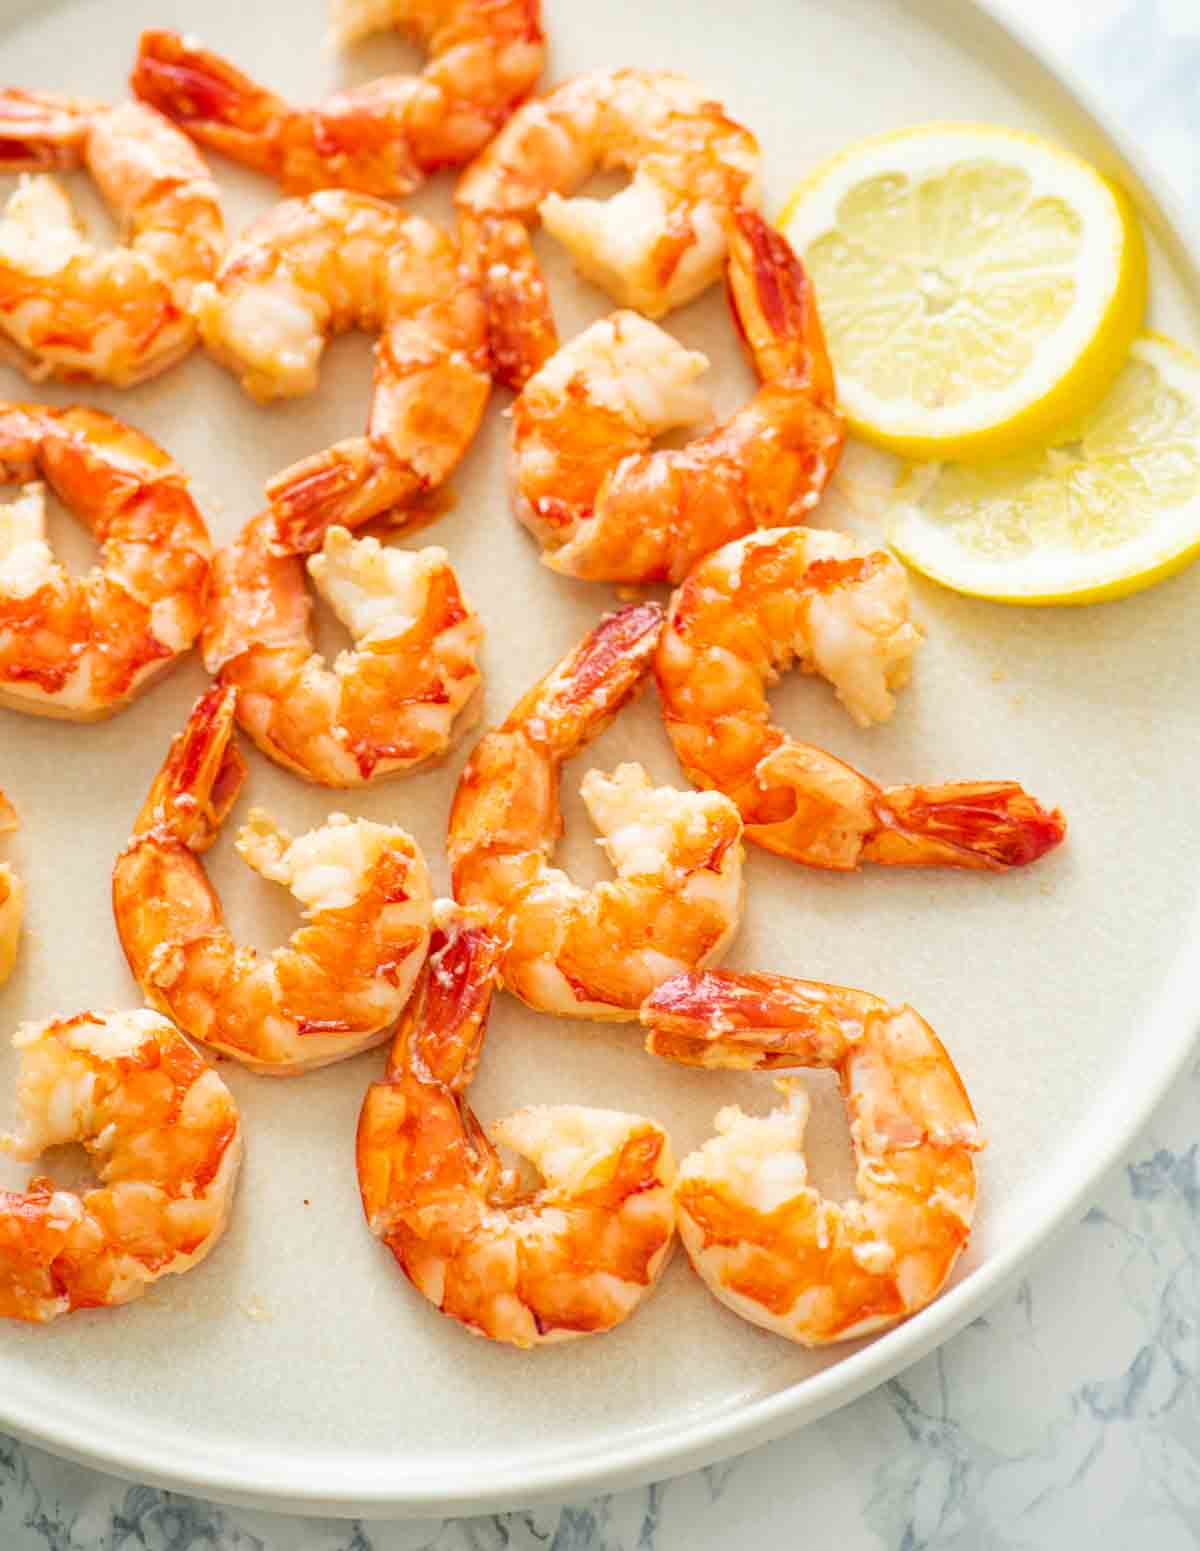 cooked shrimp with tails on and lemon slices on a white plate